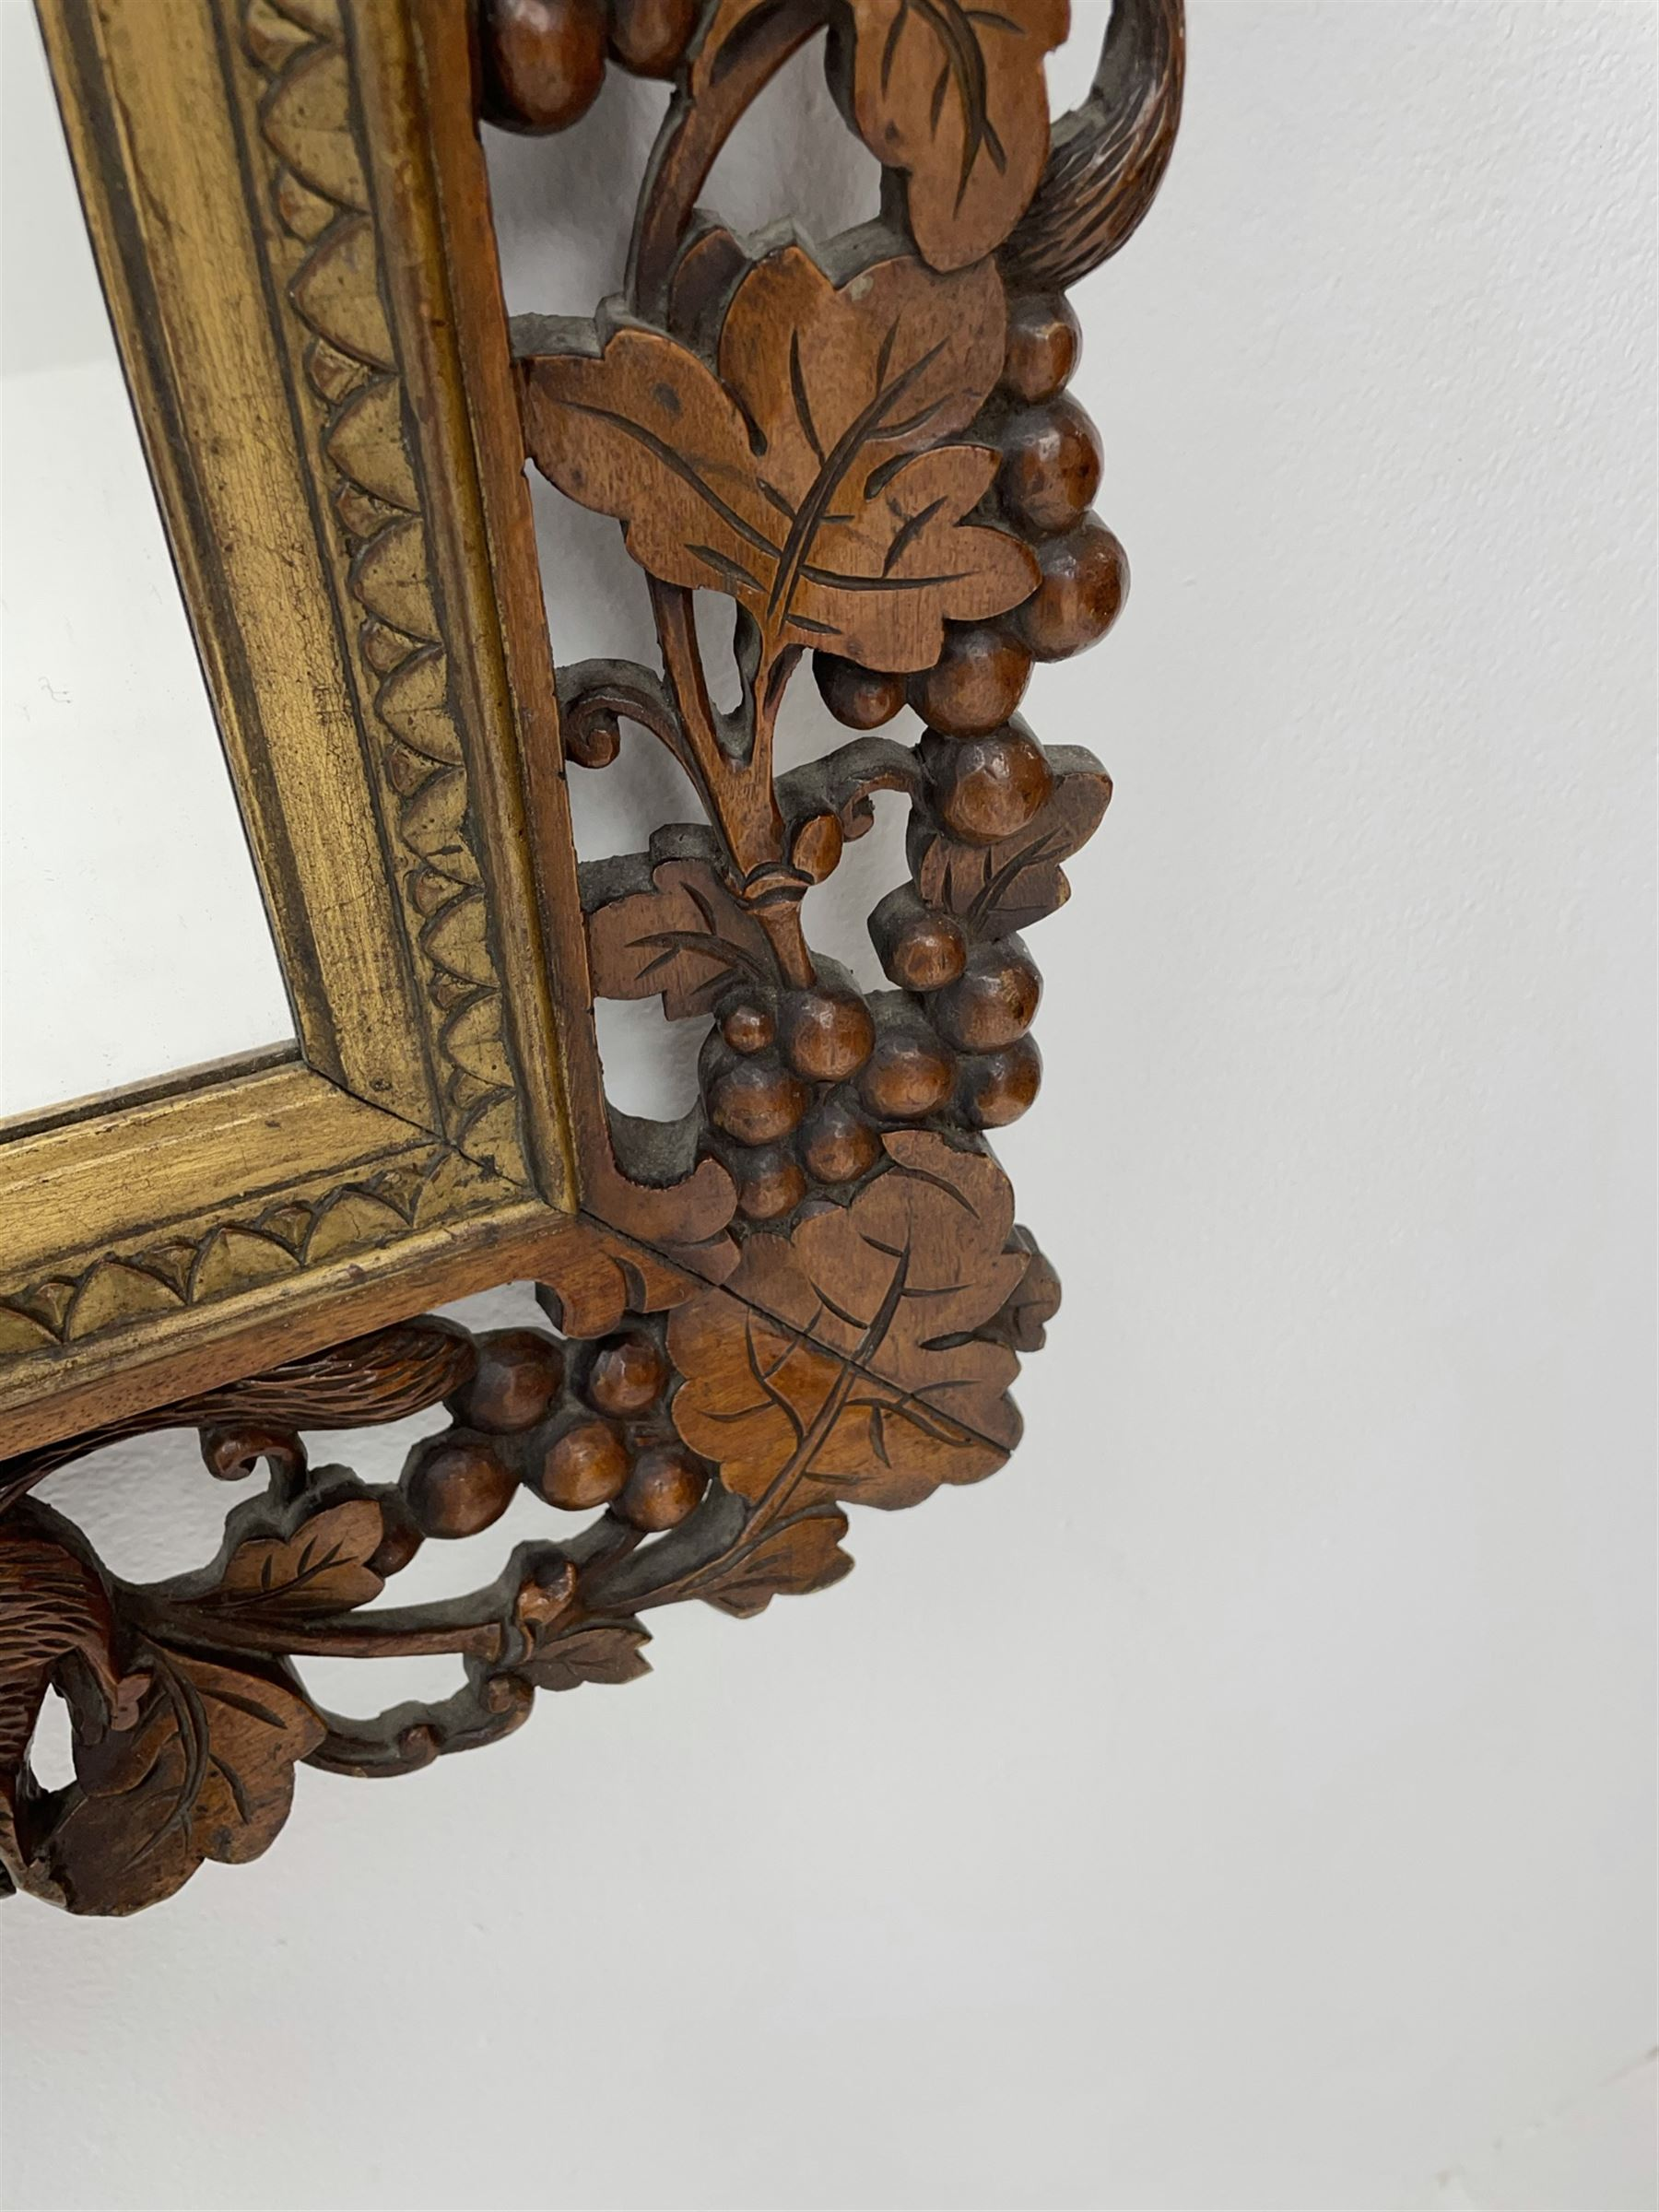 20th century rectangular wall mirror in walnut frame carved and pierced with foliage and berry decor - Image 4 of 4